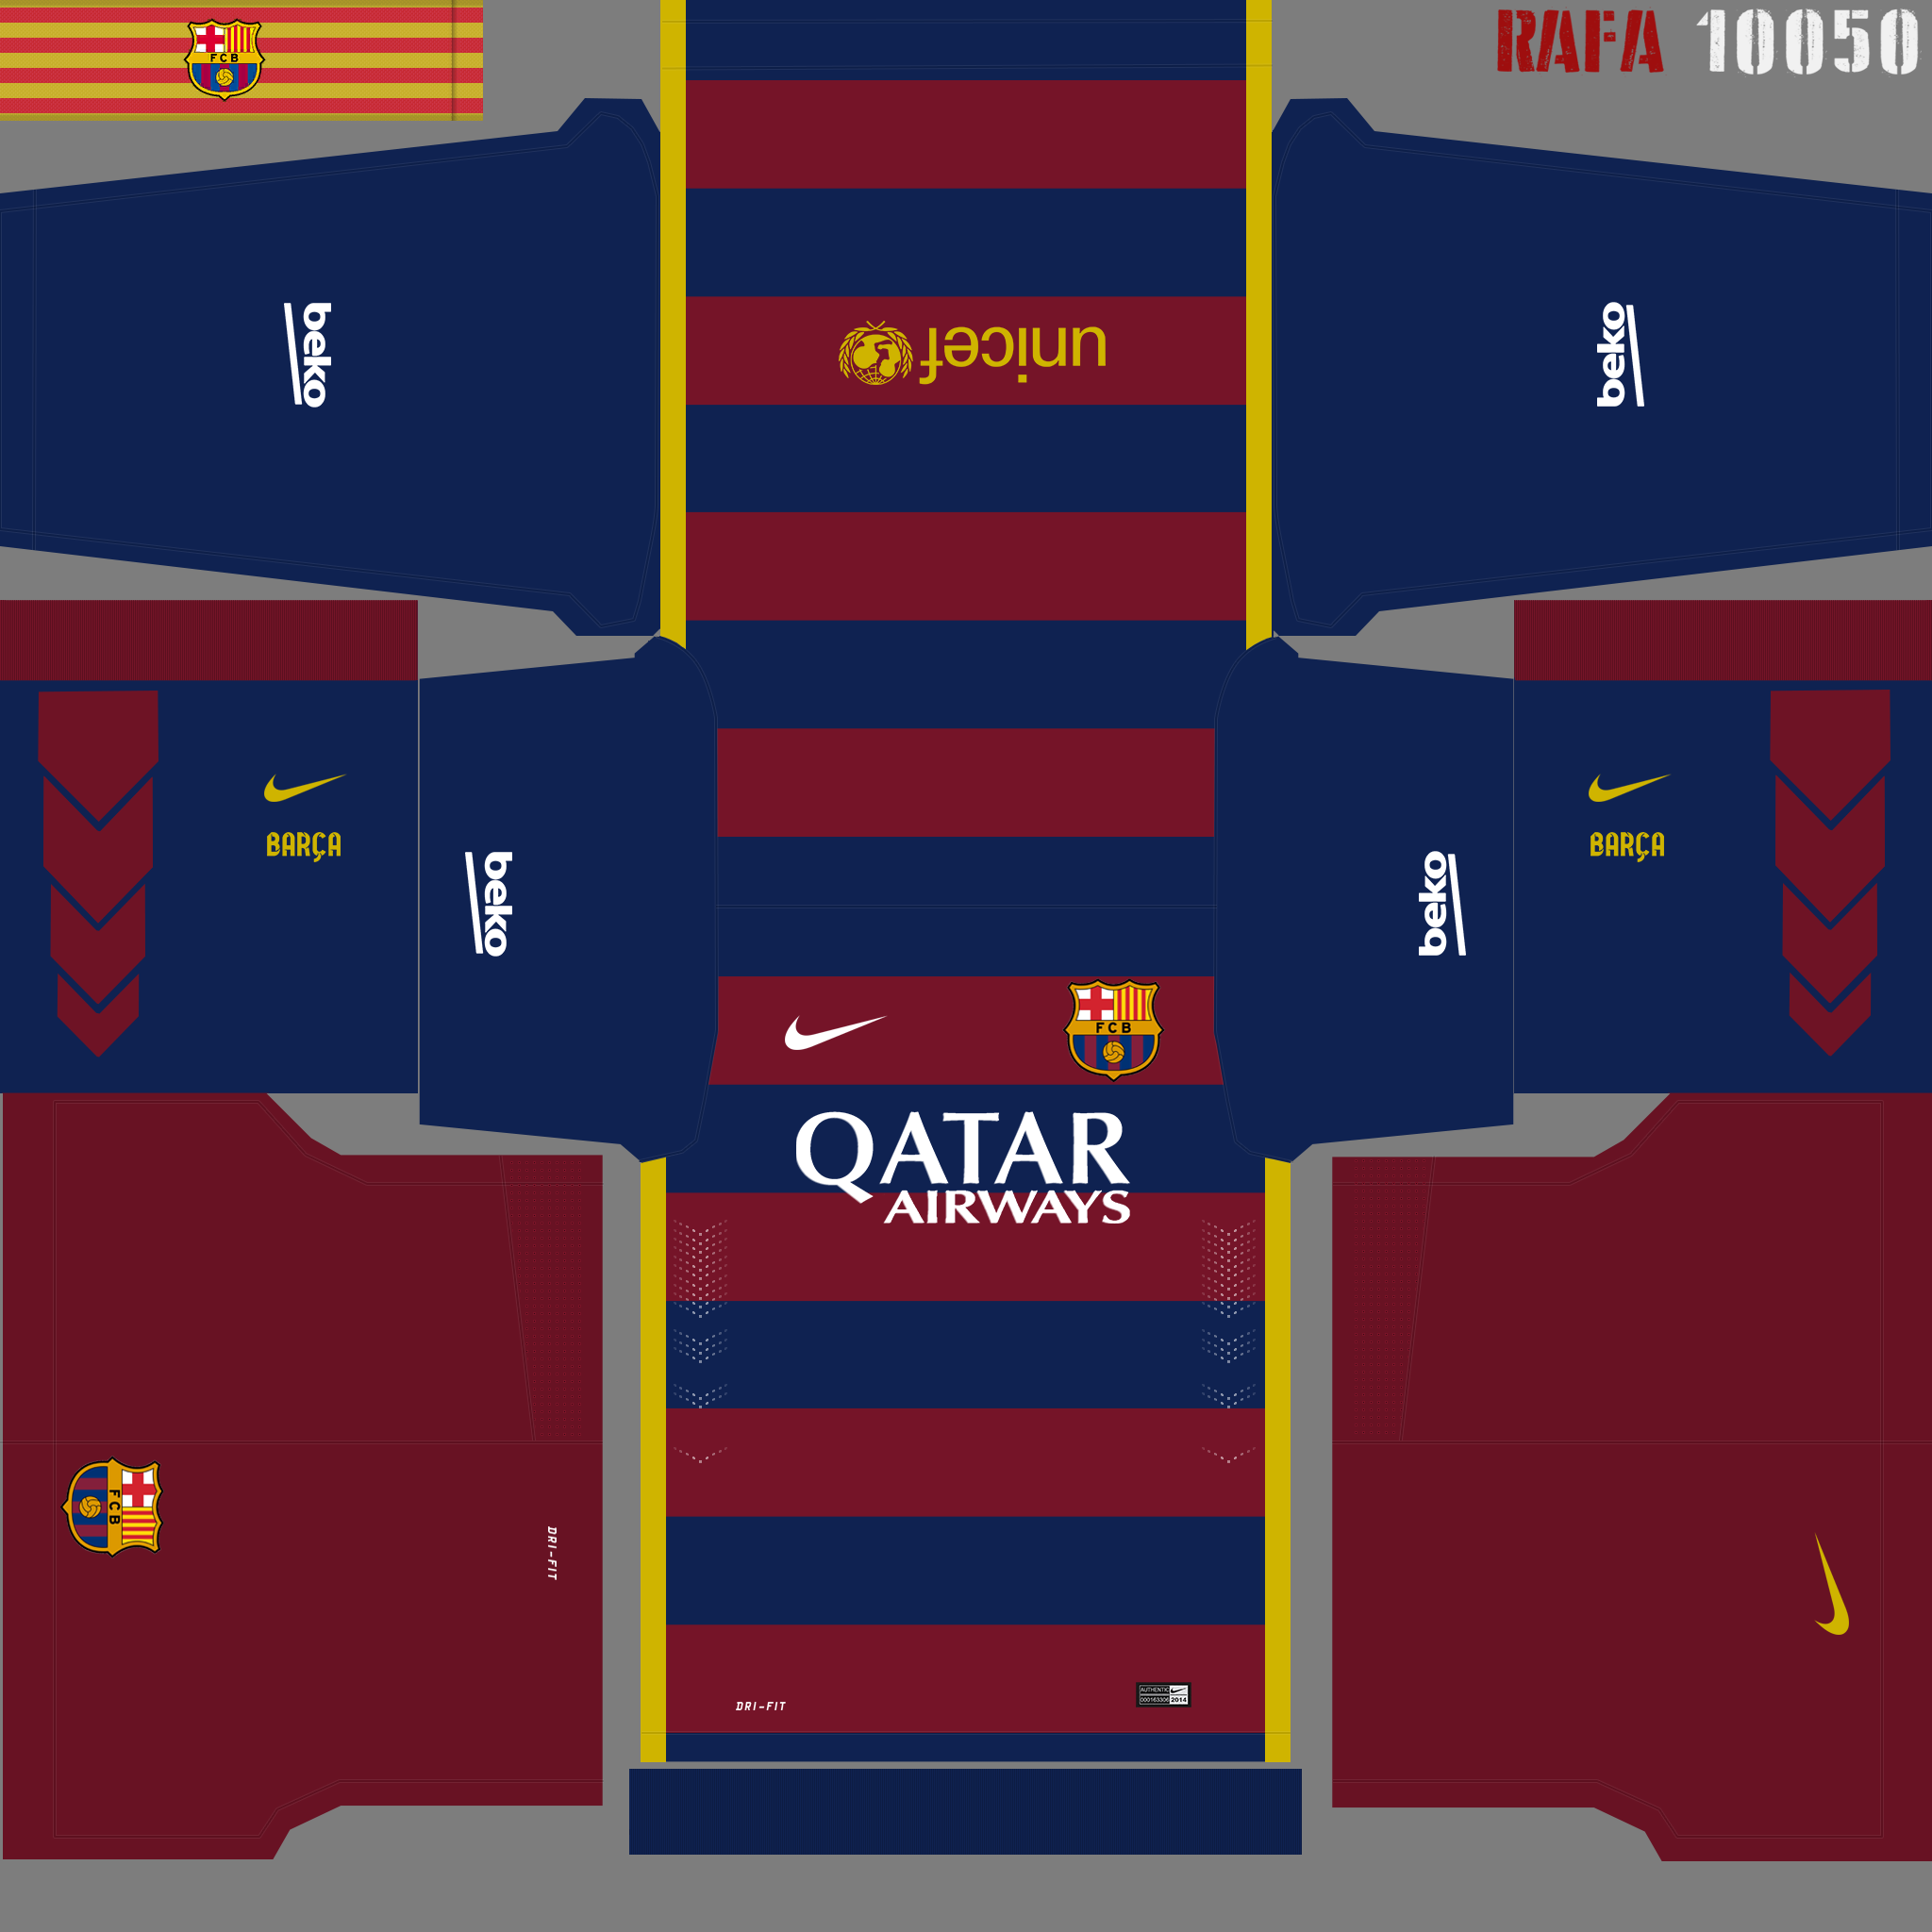 2048 x 2048 png 216kB, Aporte Kit Barcelona 15 16 Local PES 2015 ...